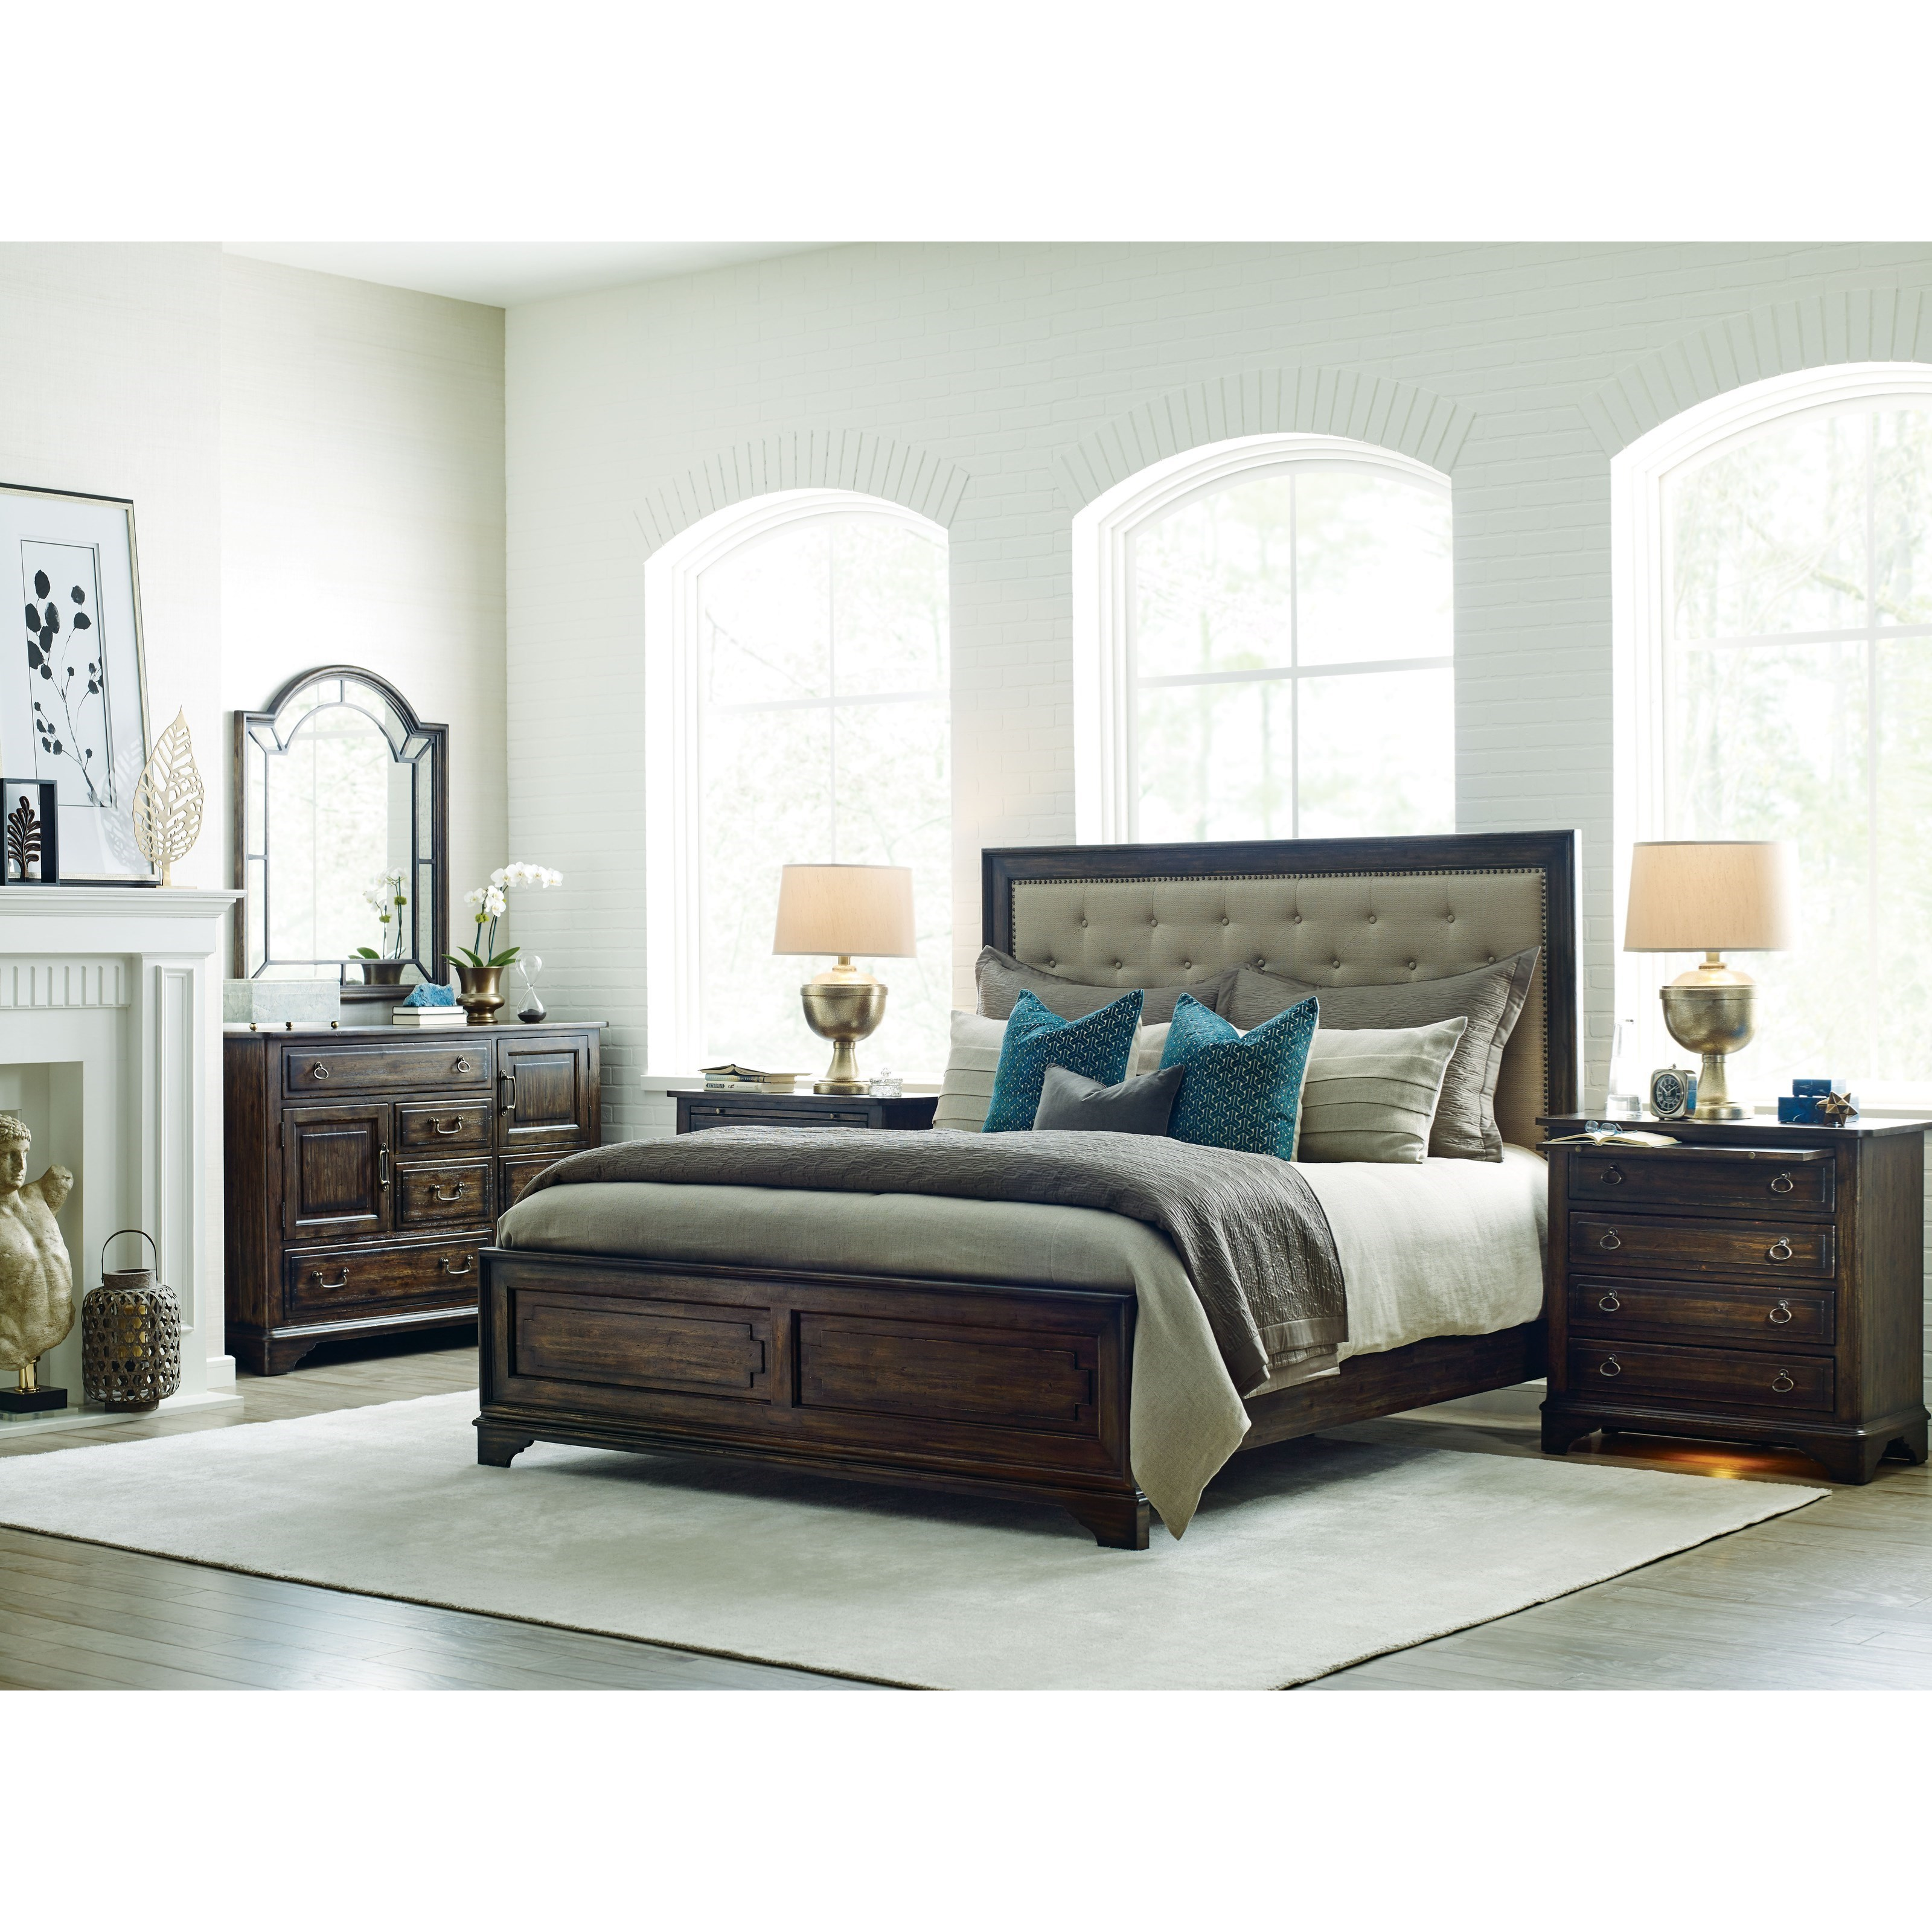 Kincaid furniture wildfire queen bedroom group belfort - Kincaid bedroom furniture for sale ...